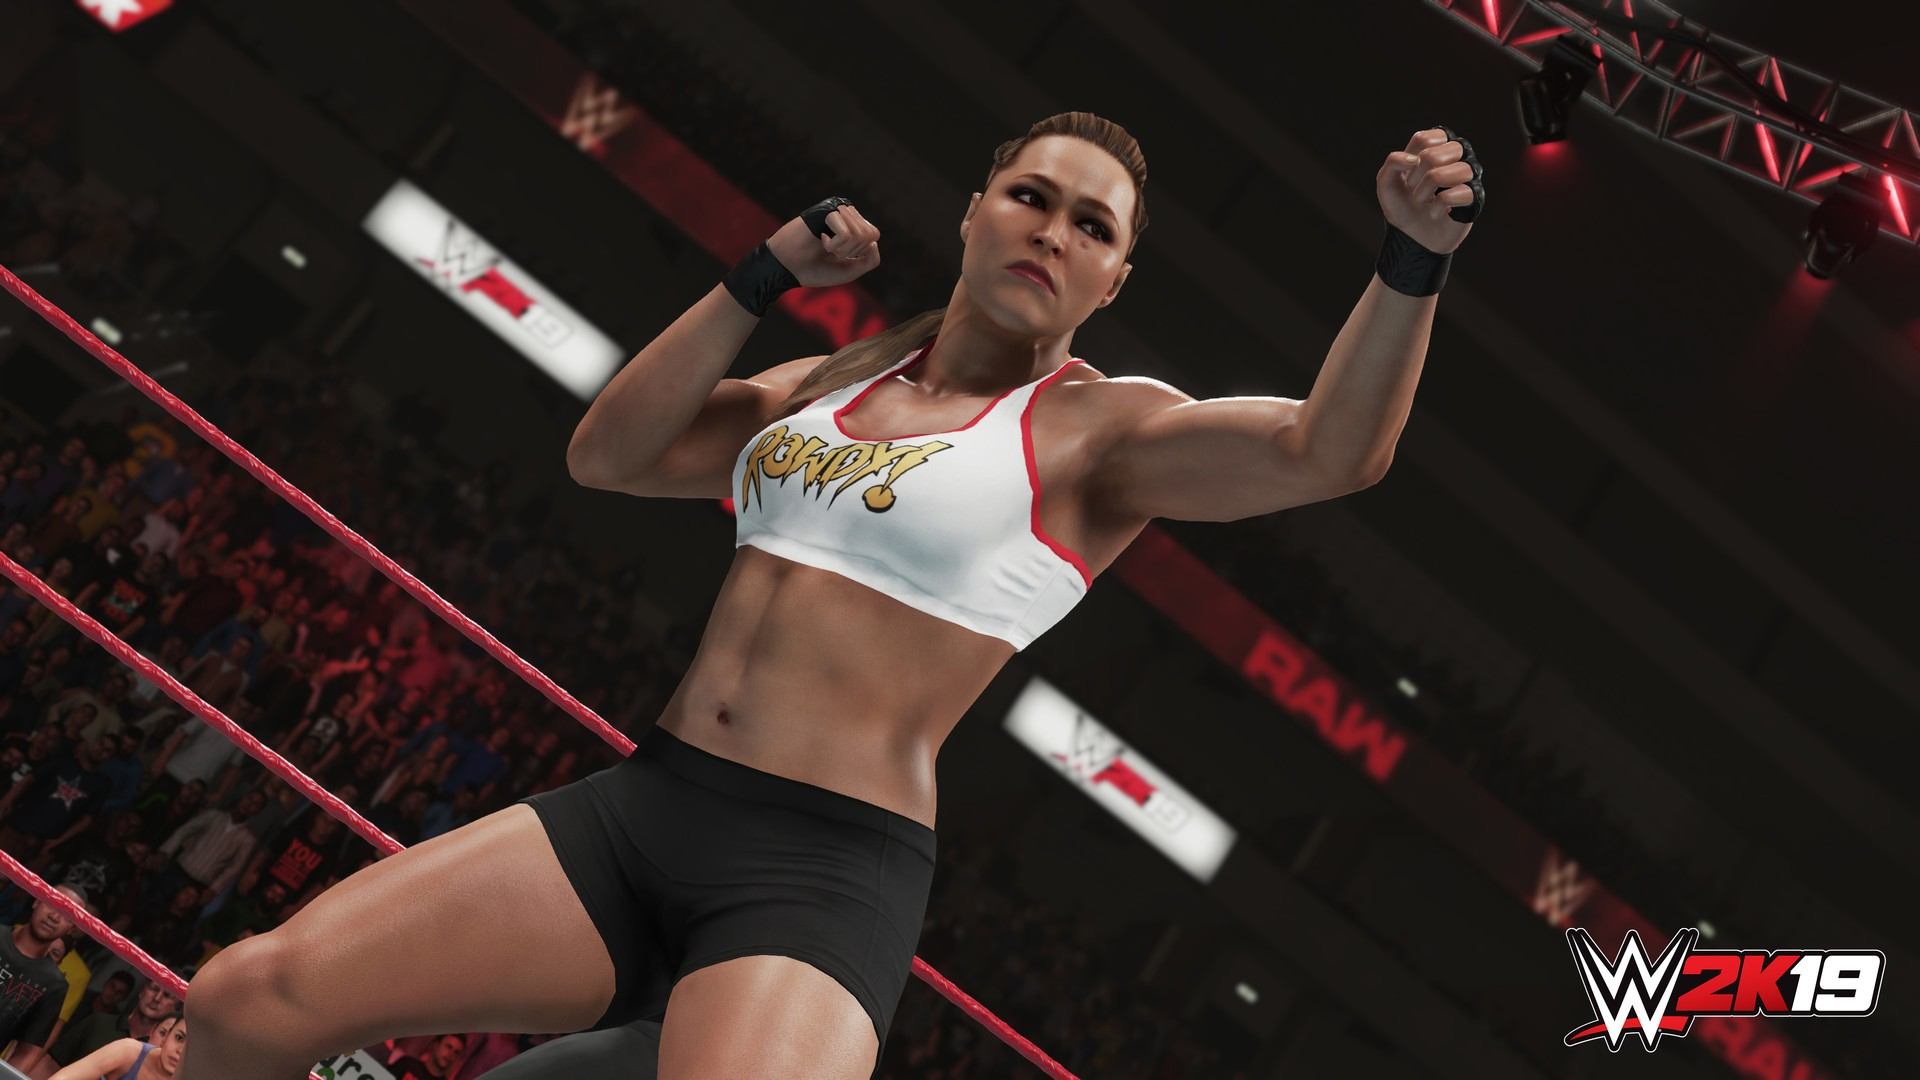 WWE 2K19 s new Towers mode details announced by 2K